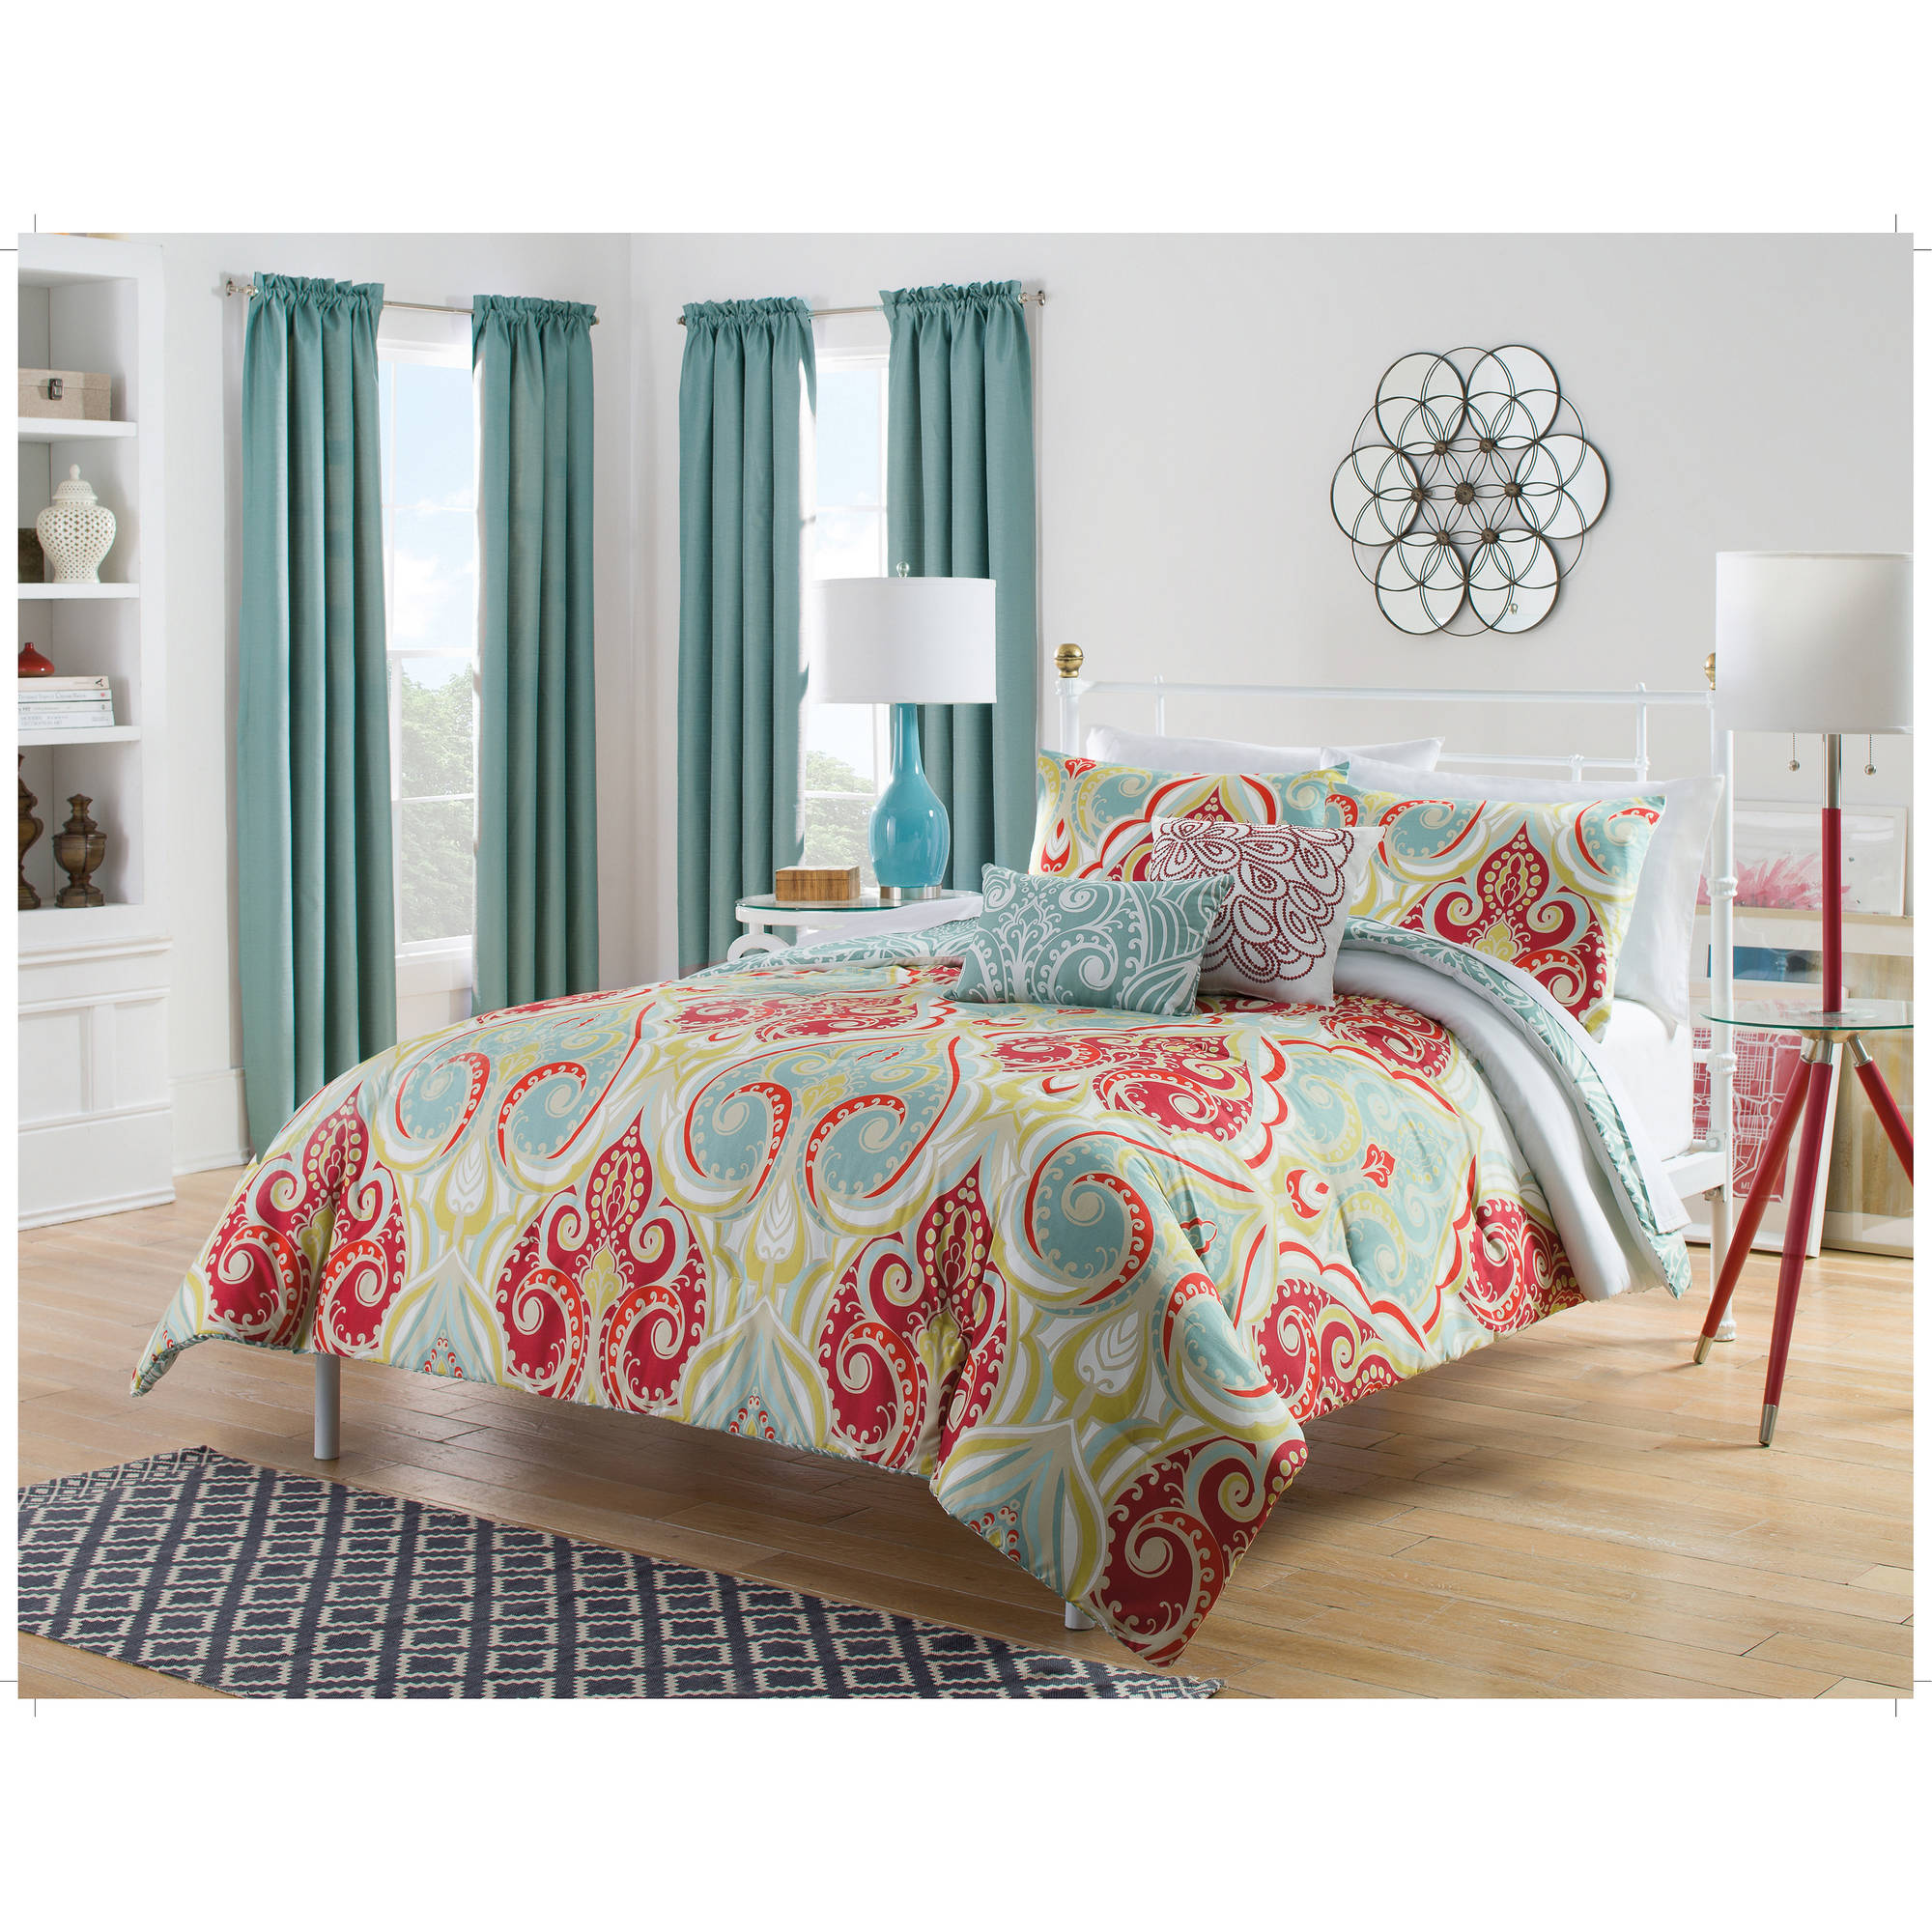 hannalore com sets better bedding home set and homes magazine quilt engaging duvet cover garden master small walmart ideas pintuck gardens bedroom